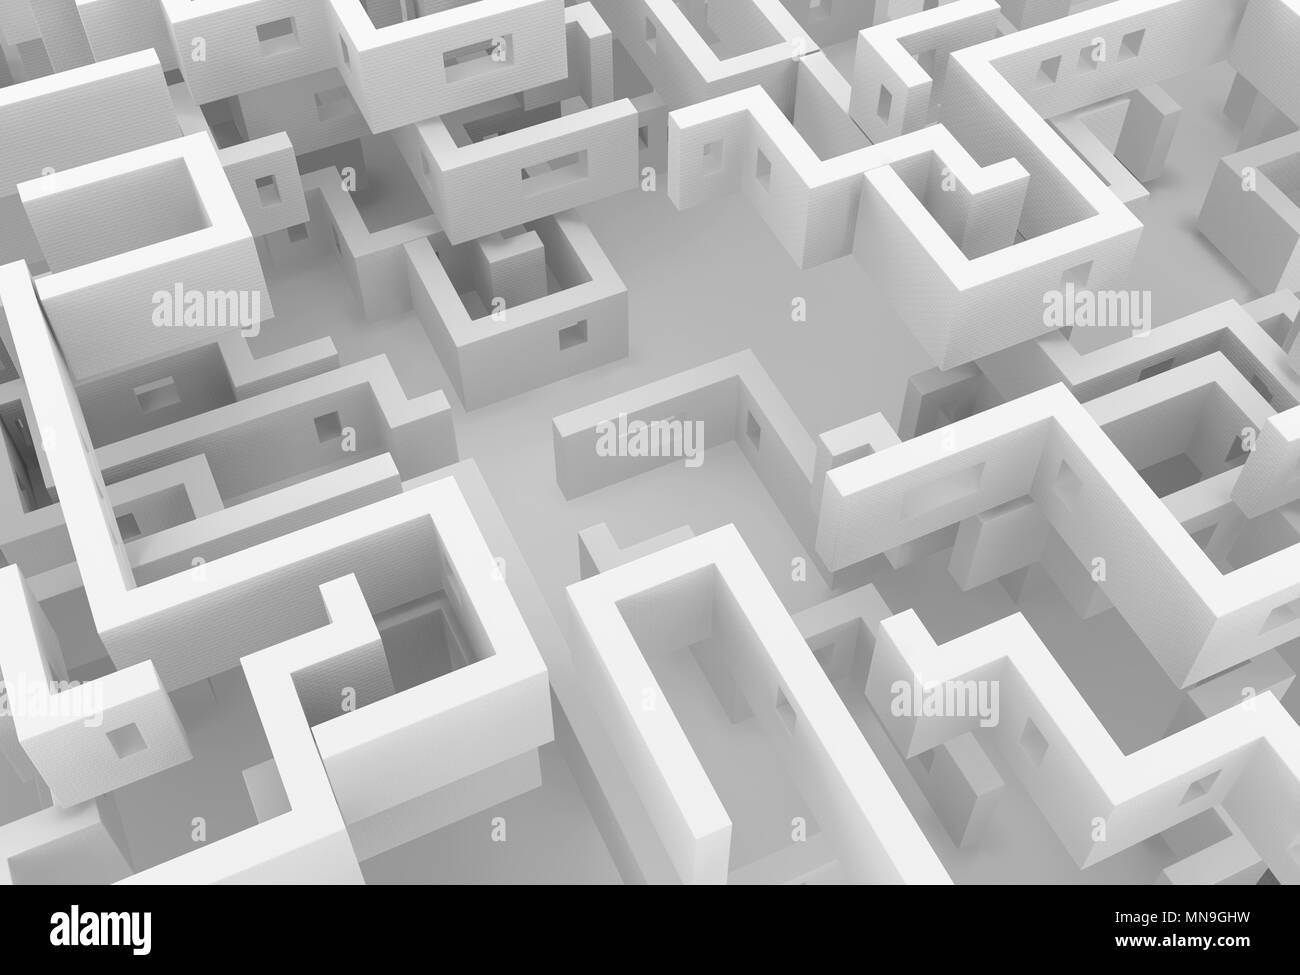 Mur Blanc Labyrinthe Labyrinthe de l'espace vide, abstrait 3d illustration, horizontal Photo Stock